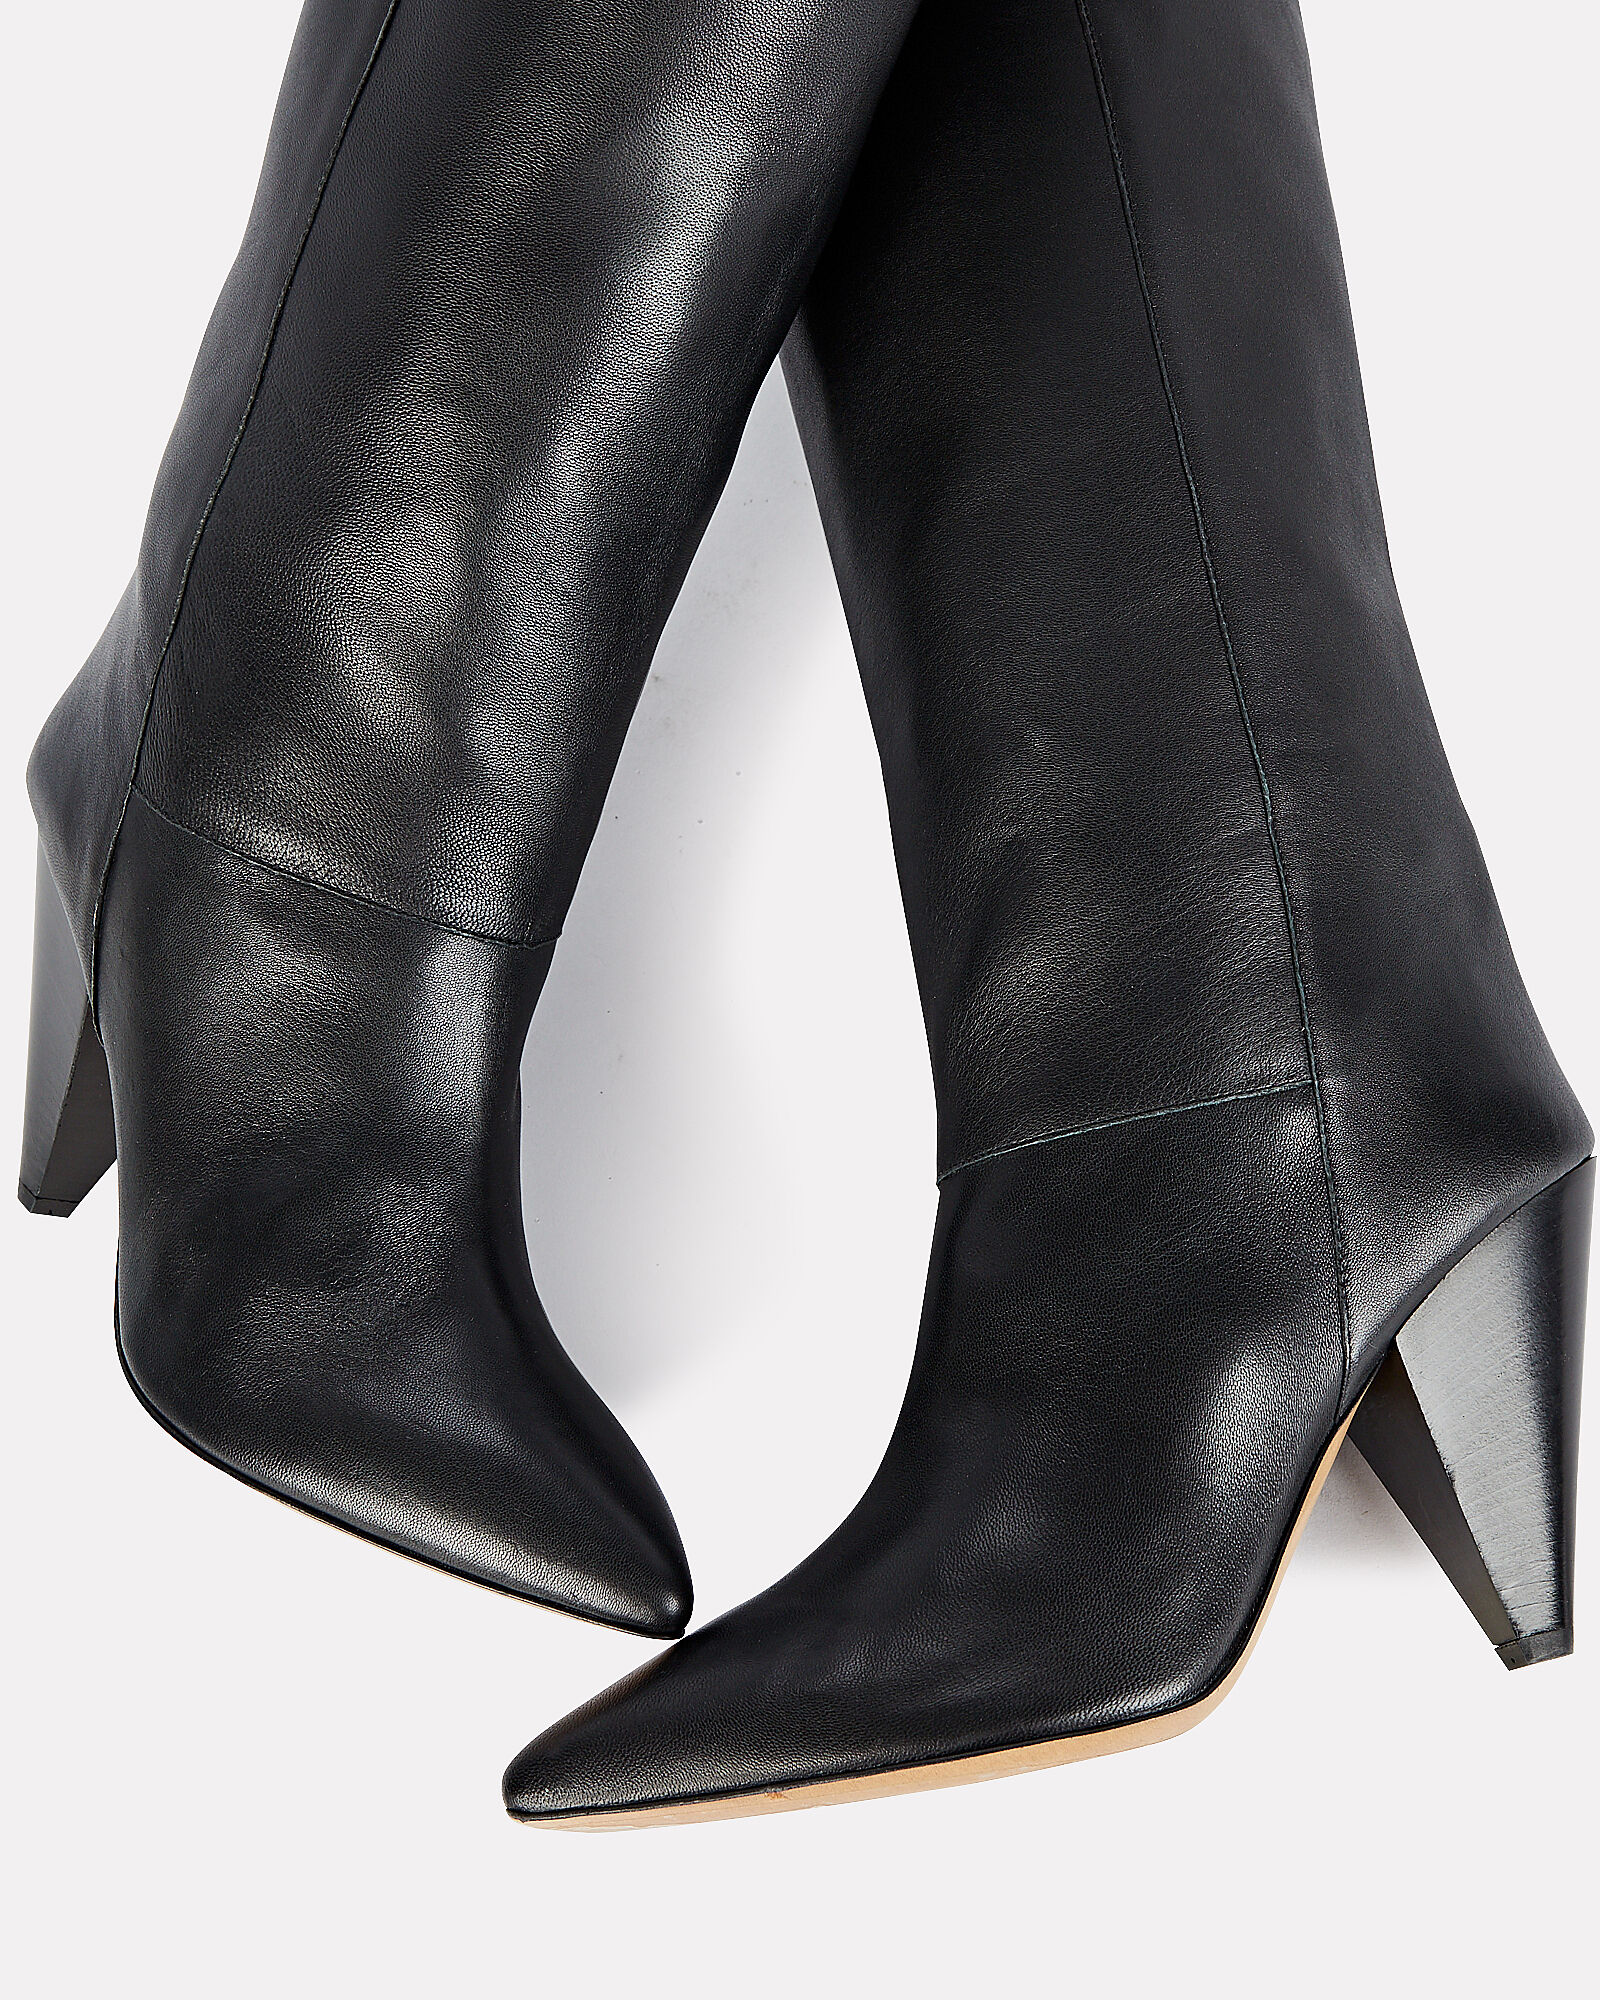 Loens Knee-High Leather Boots, BLACK, hi-res